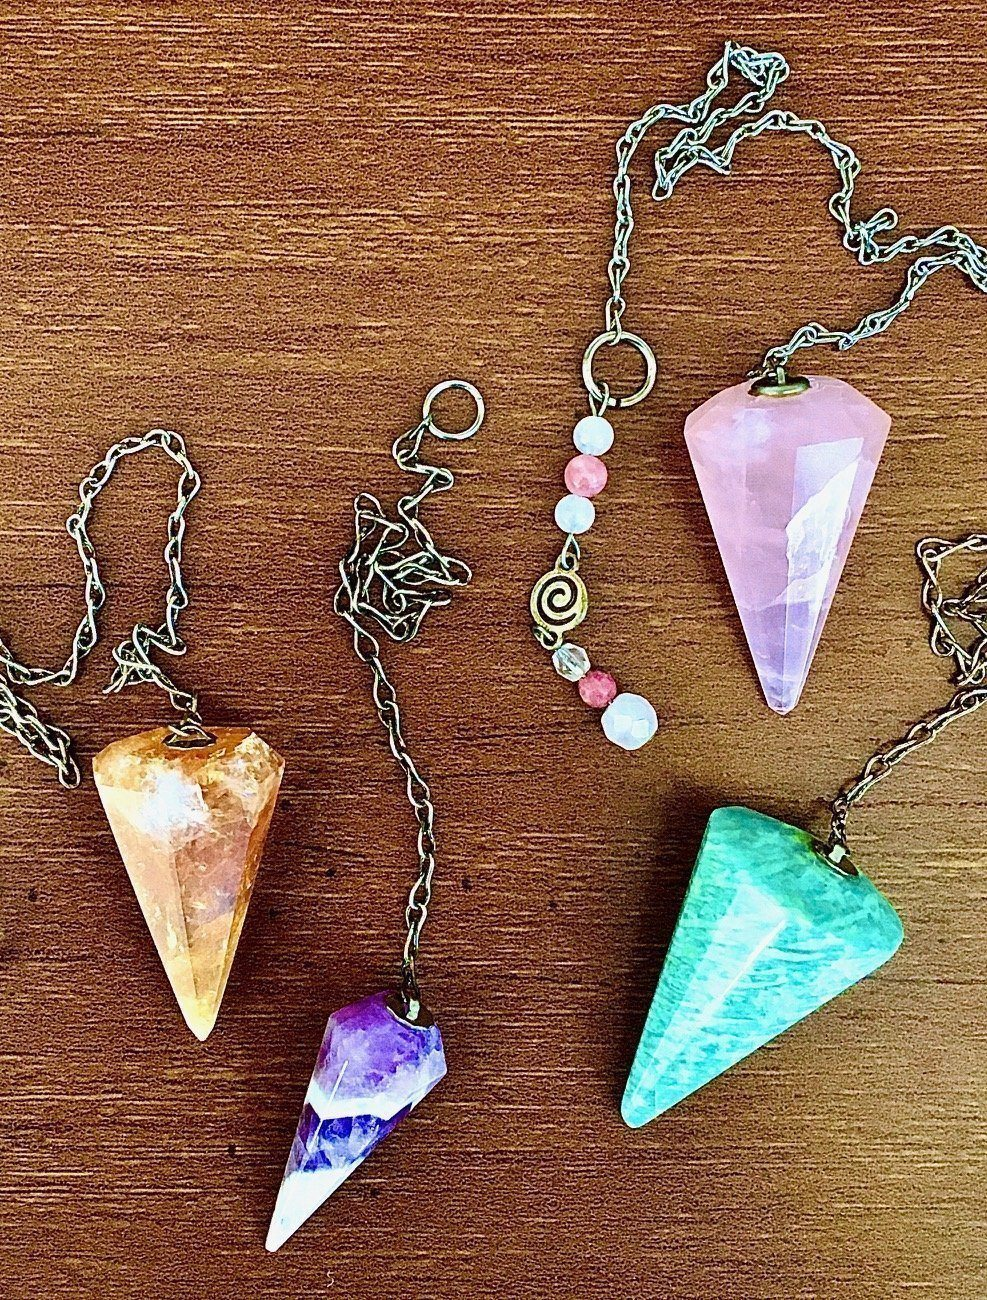 Empowered Goddess - Let's Talk About Pendulums